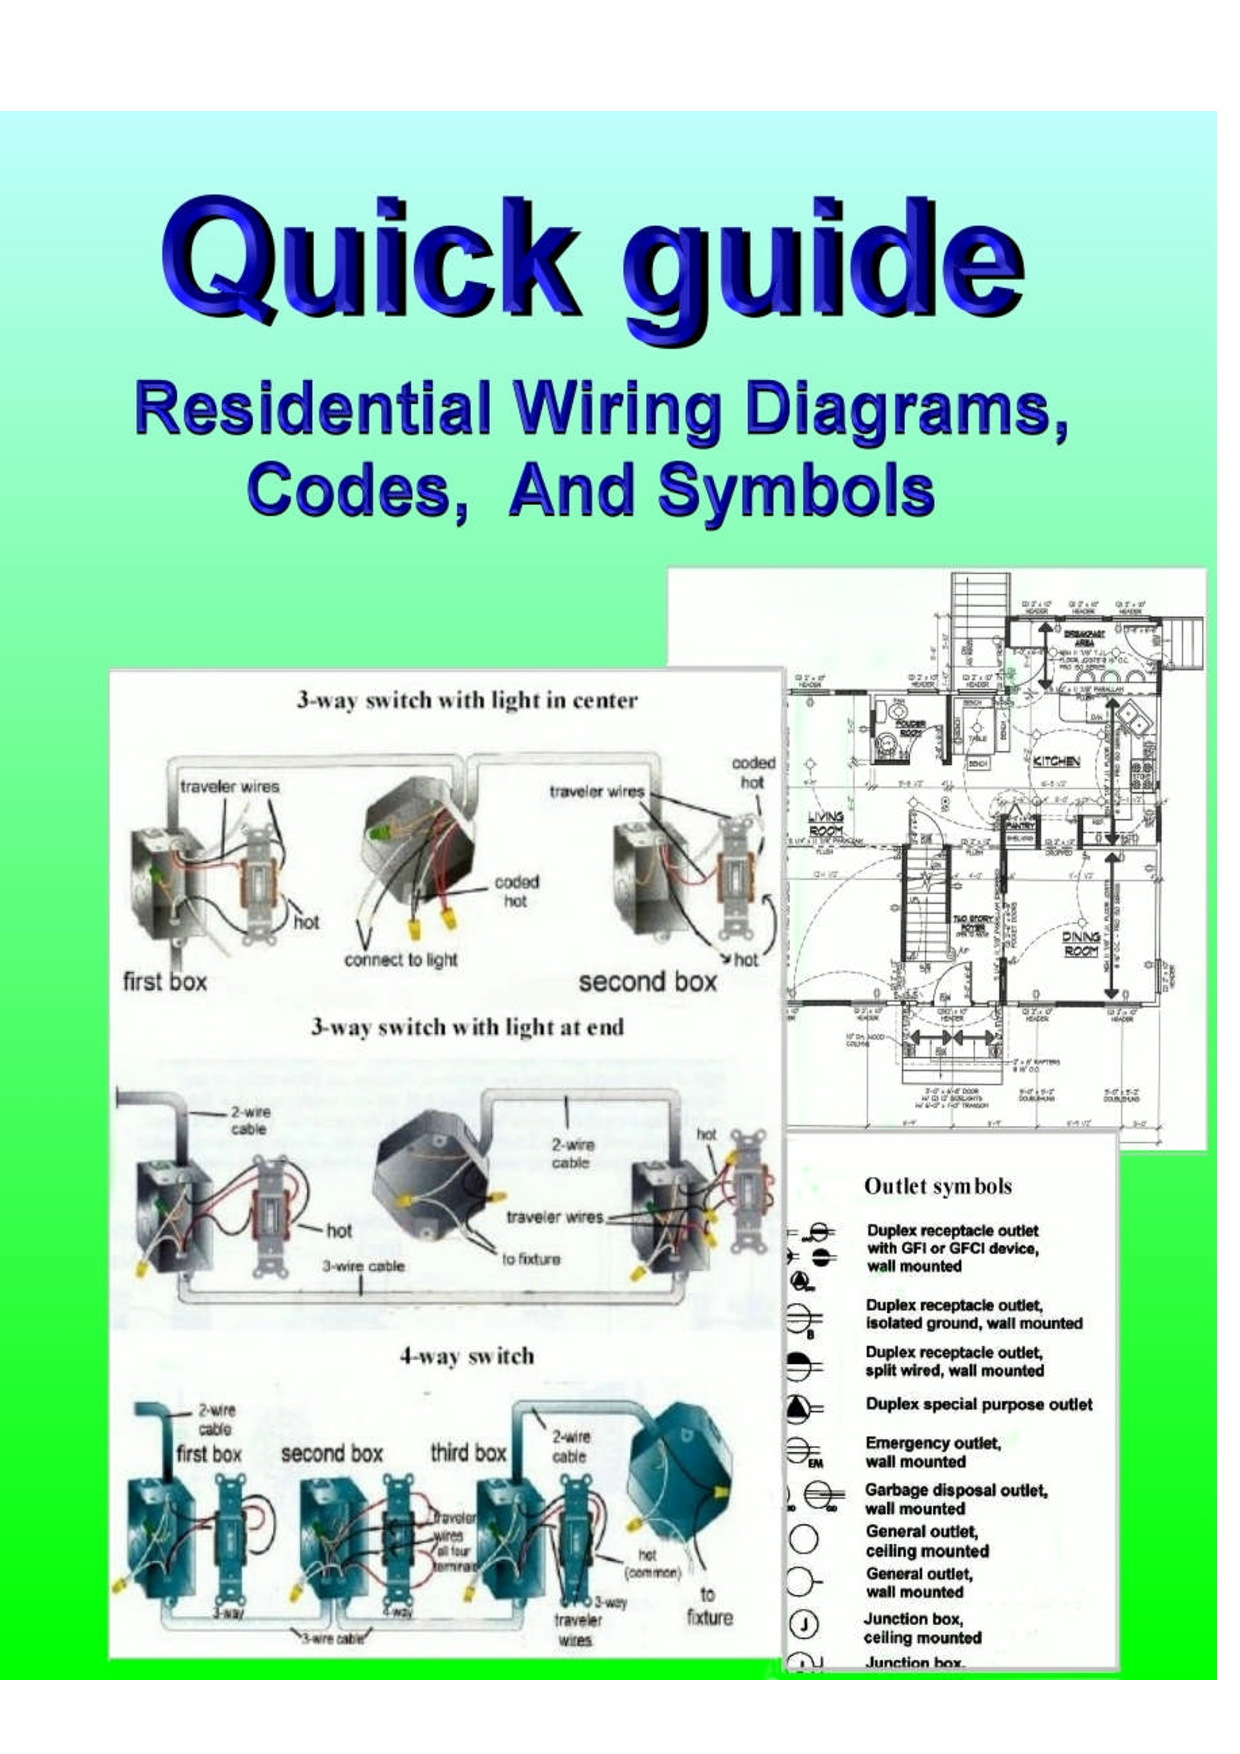 home electrical wiring diagrams pdf download legal documents 39 rh pinterest co uk 120V Electrical Switch Wiring Diagrams Electrical Wiring Diagrams For Dummies